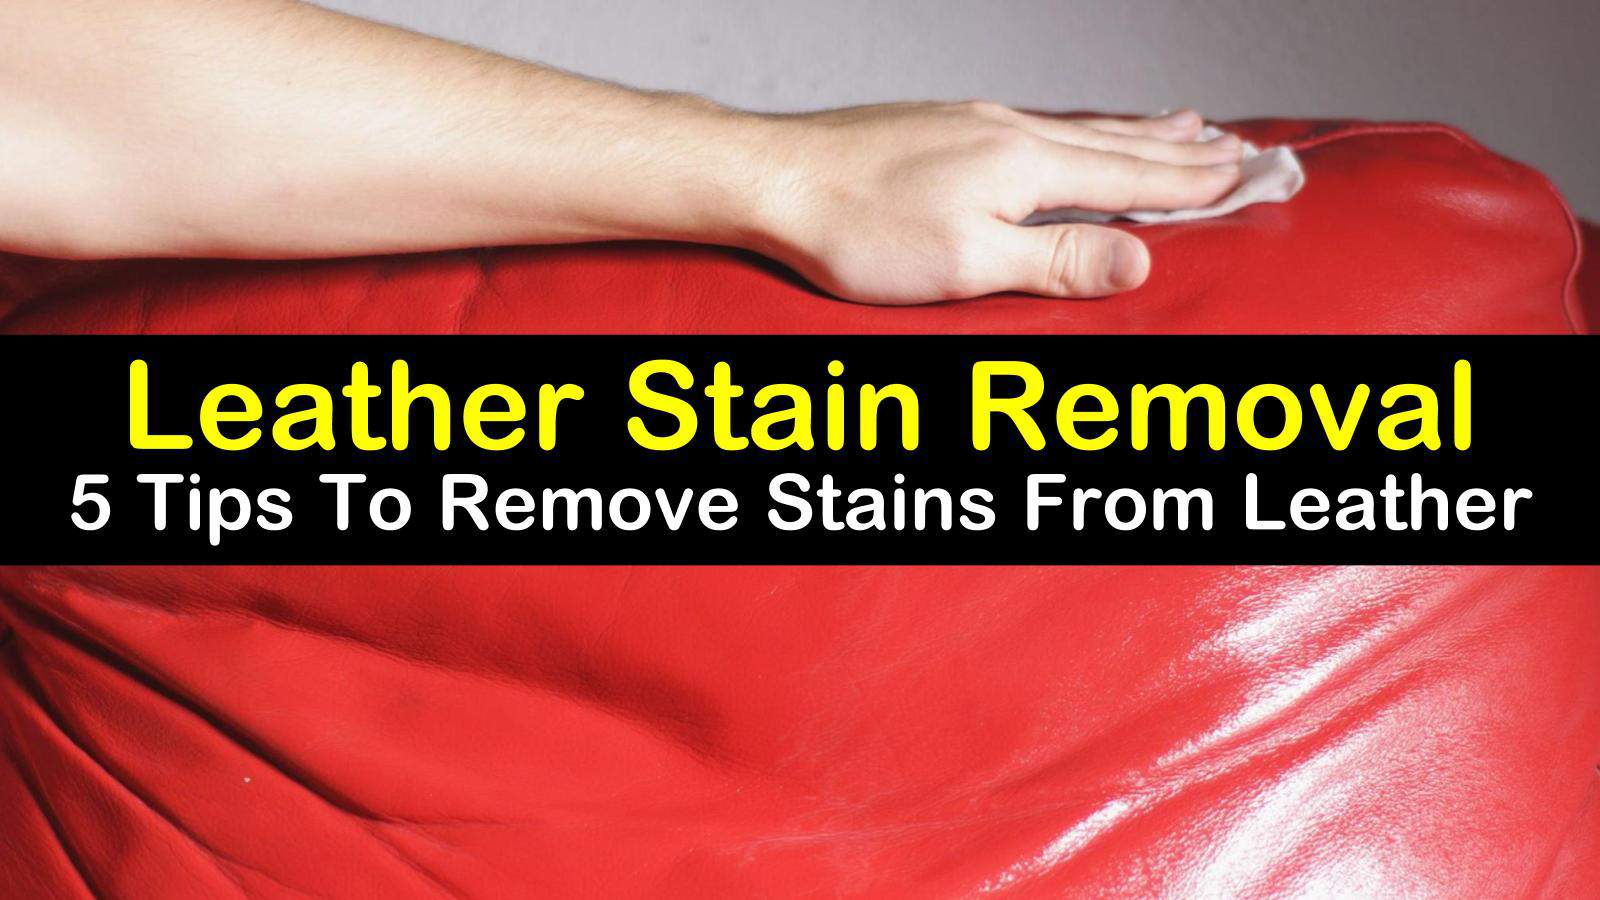 how to remove stains from leather titleimg1